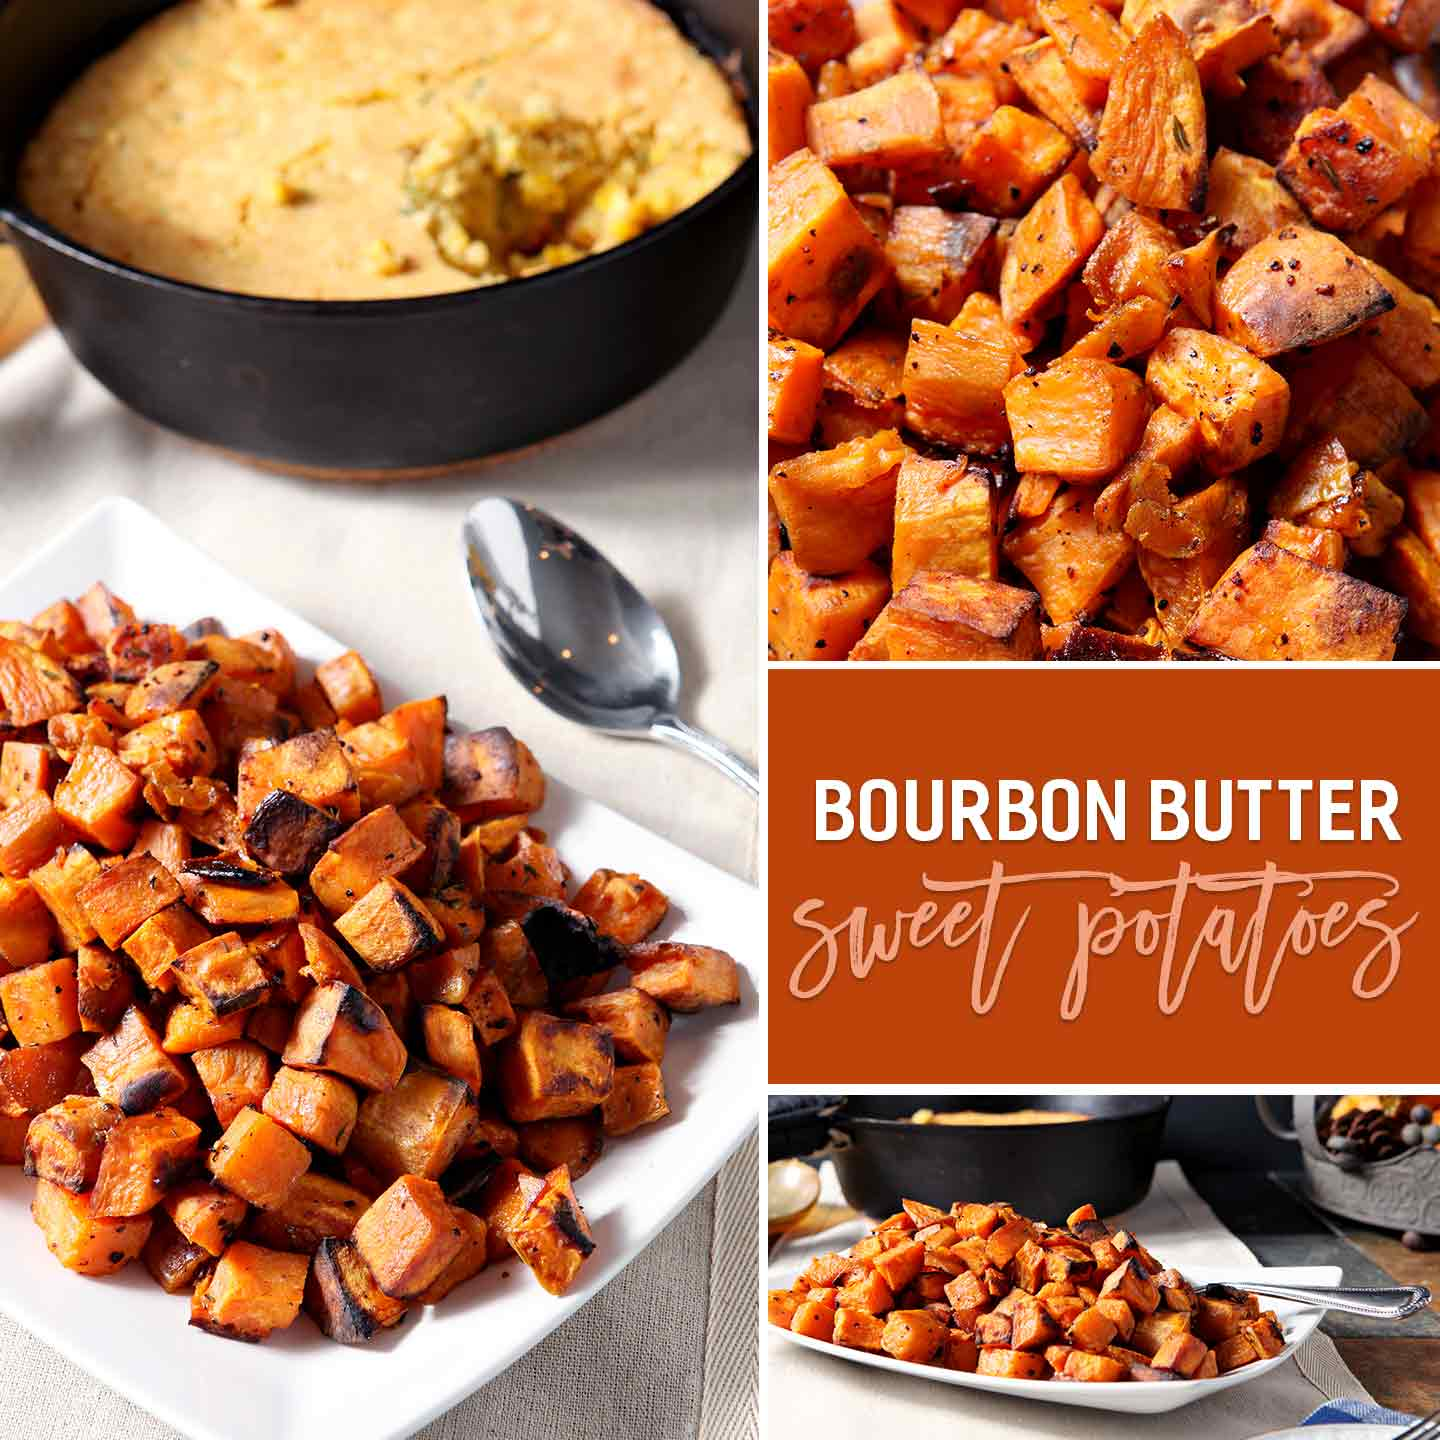 Bourbon Butter Sweet Potatoes // The Speckled Palate